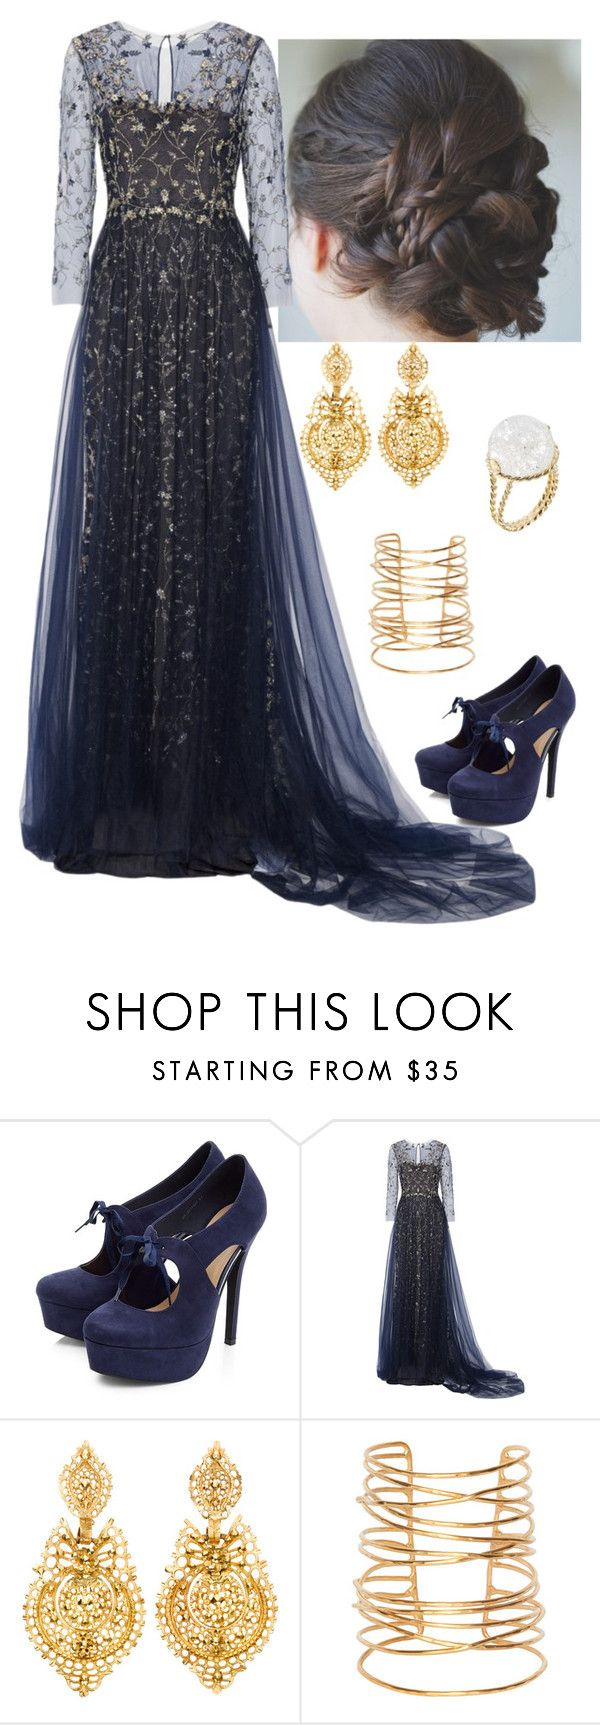 """Blue and Gold"" by manderine2 ❤ liked on Polyvore featuring Marchesa, Jill Heller, Rebecca Taylor and Aurélie Bidermann"